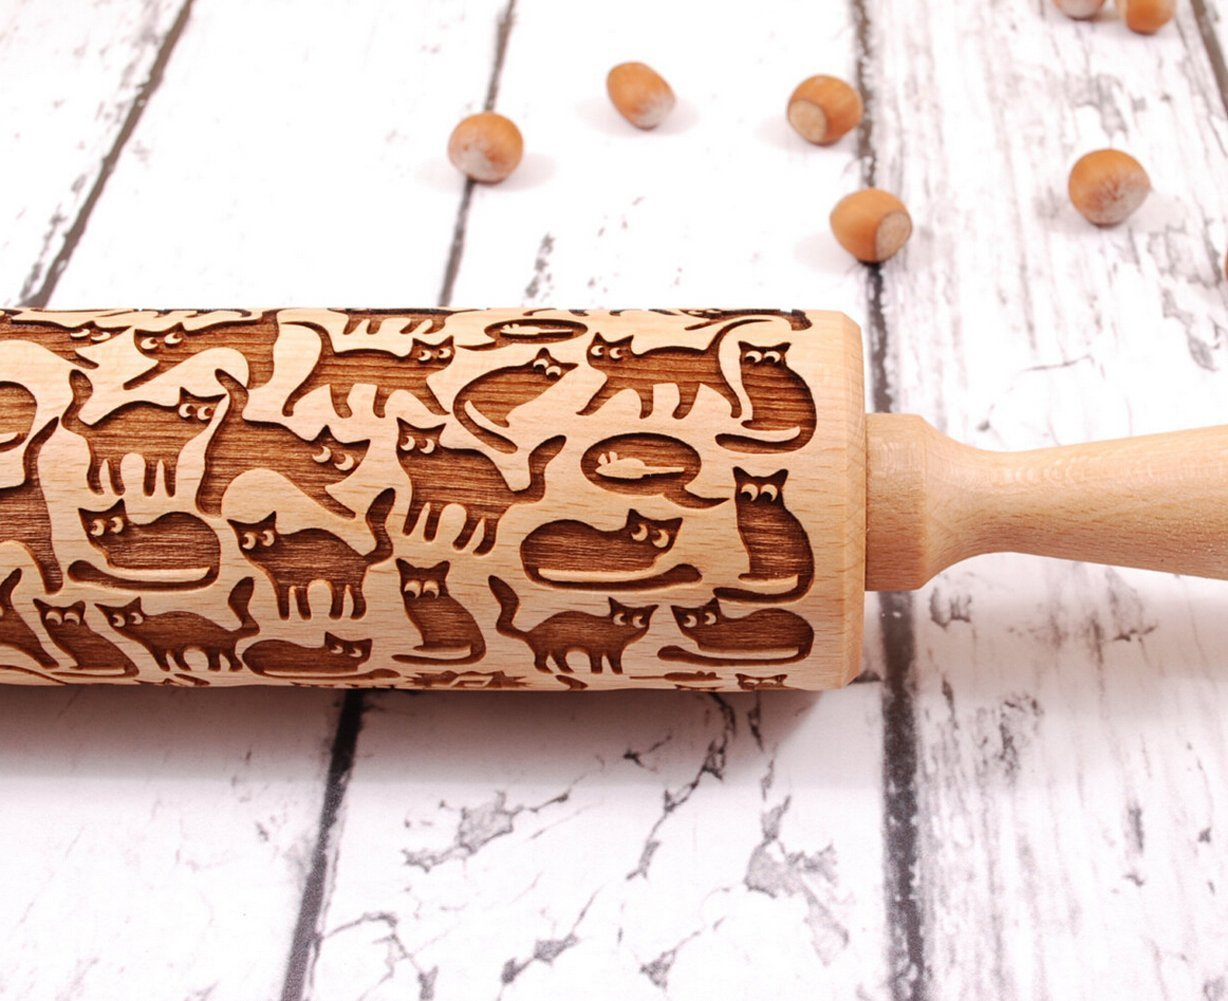 Kedera Cats Pattern Embossing Rolling Pin,Wooden Laser Engraved Rolling Pin With Cats For Embossed Cookies Kederastyle RNm-6